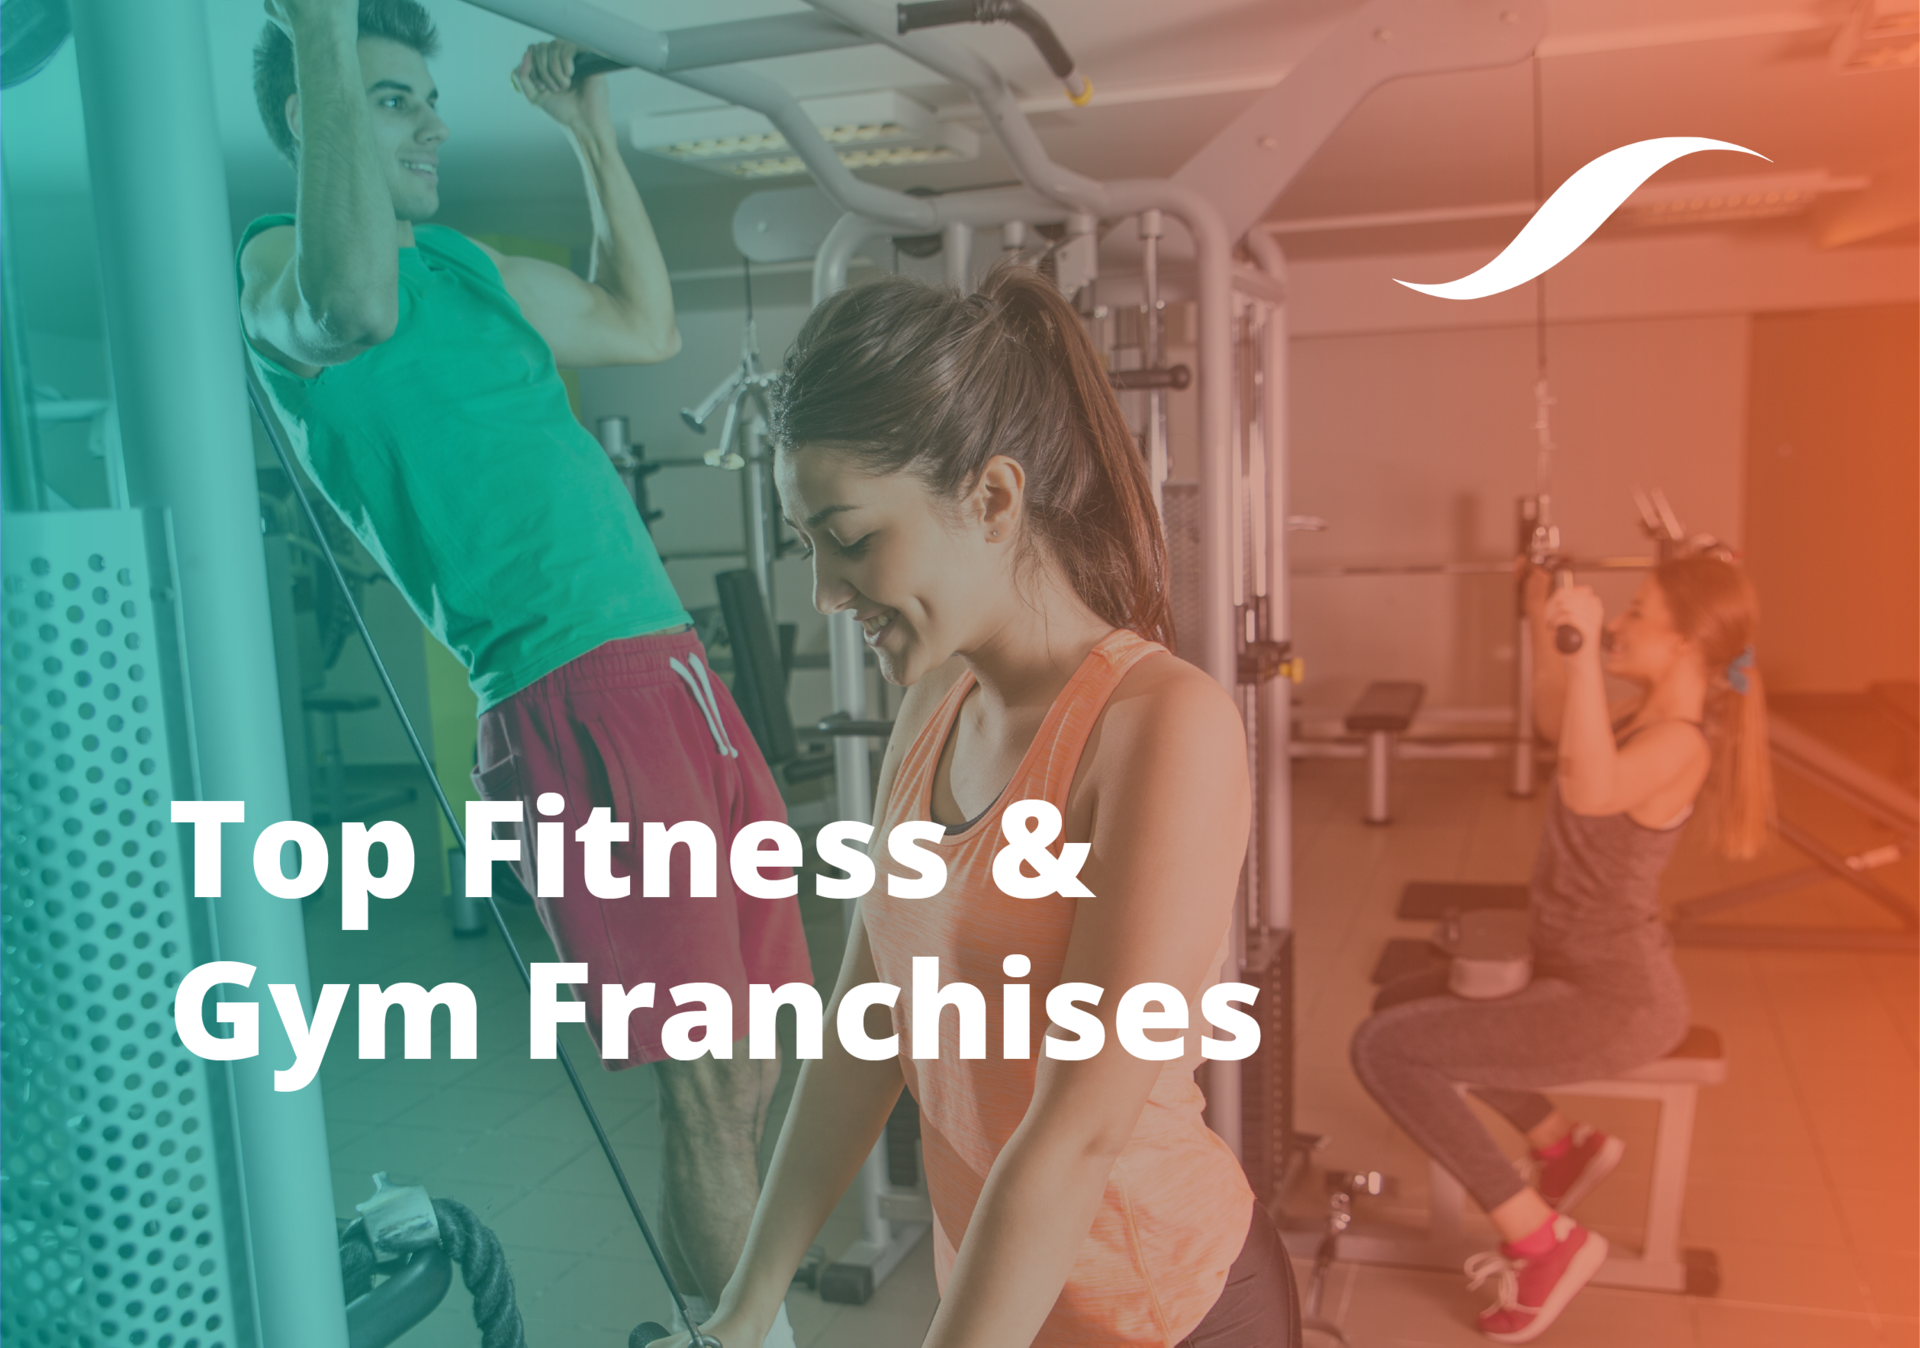 top fitness and gym franchises banner image